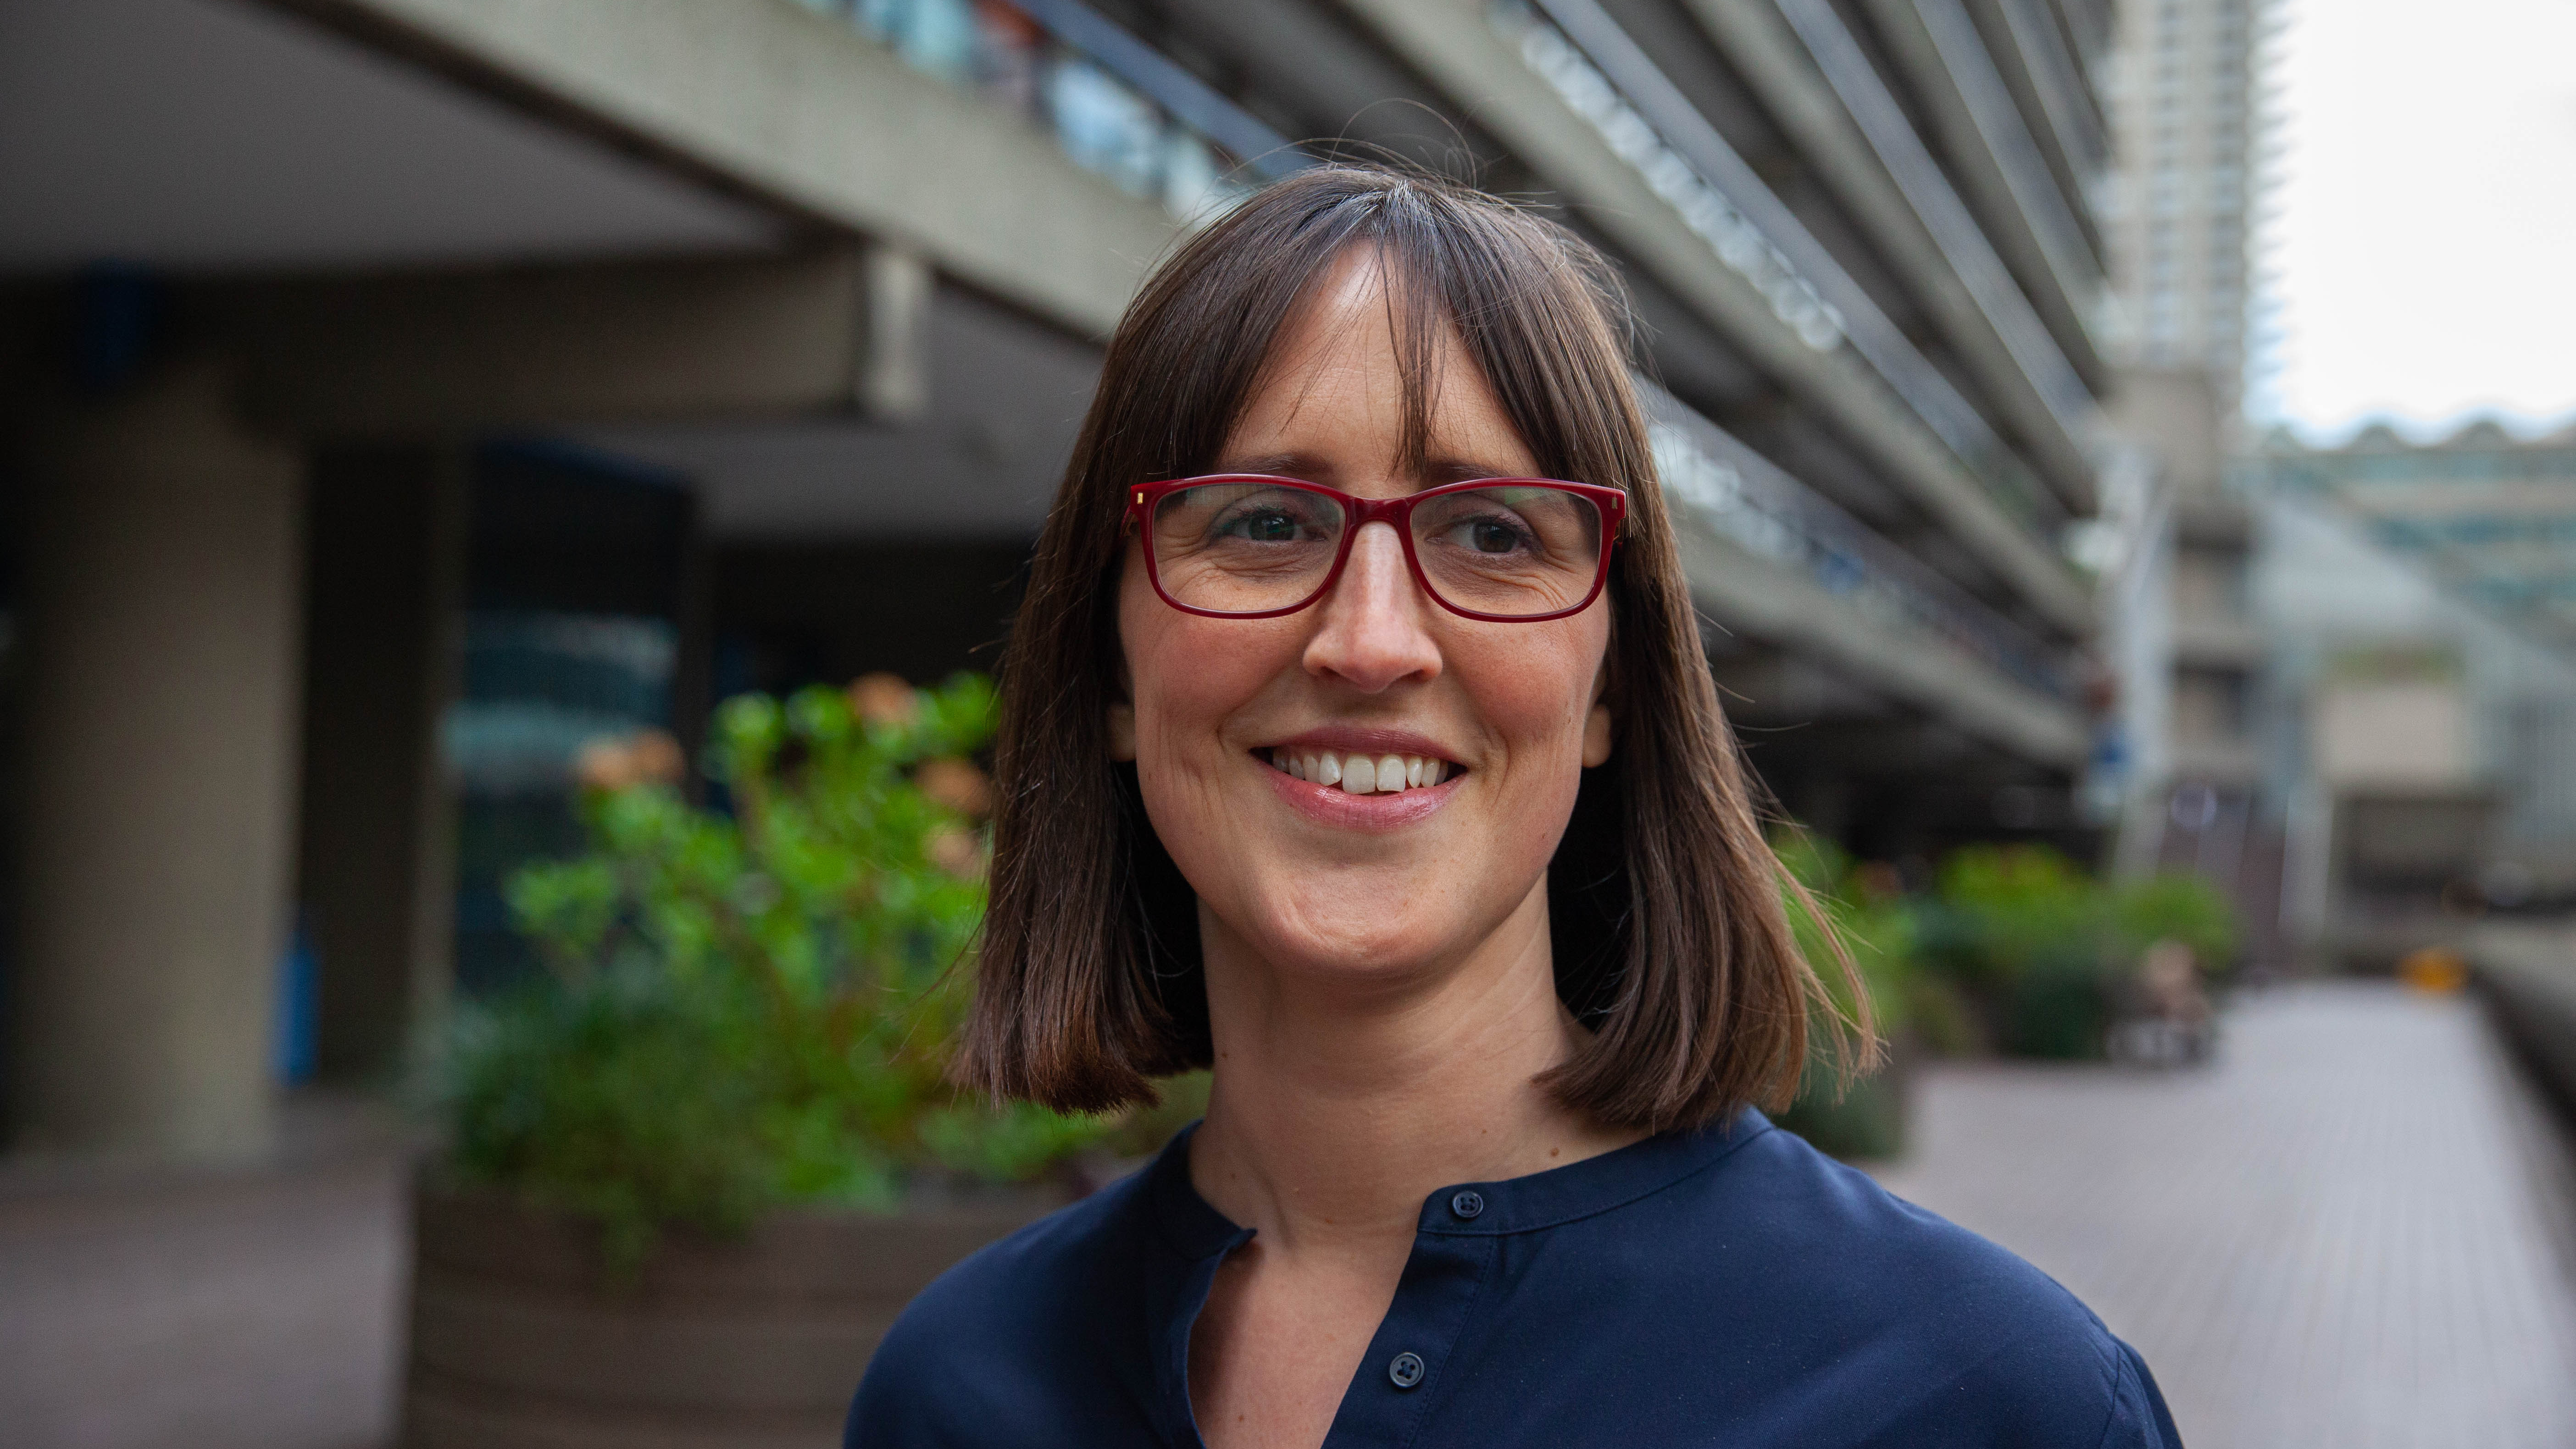 Helen Arthur, Senior Facilities Manager at Mace